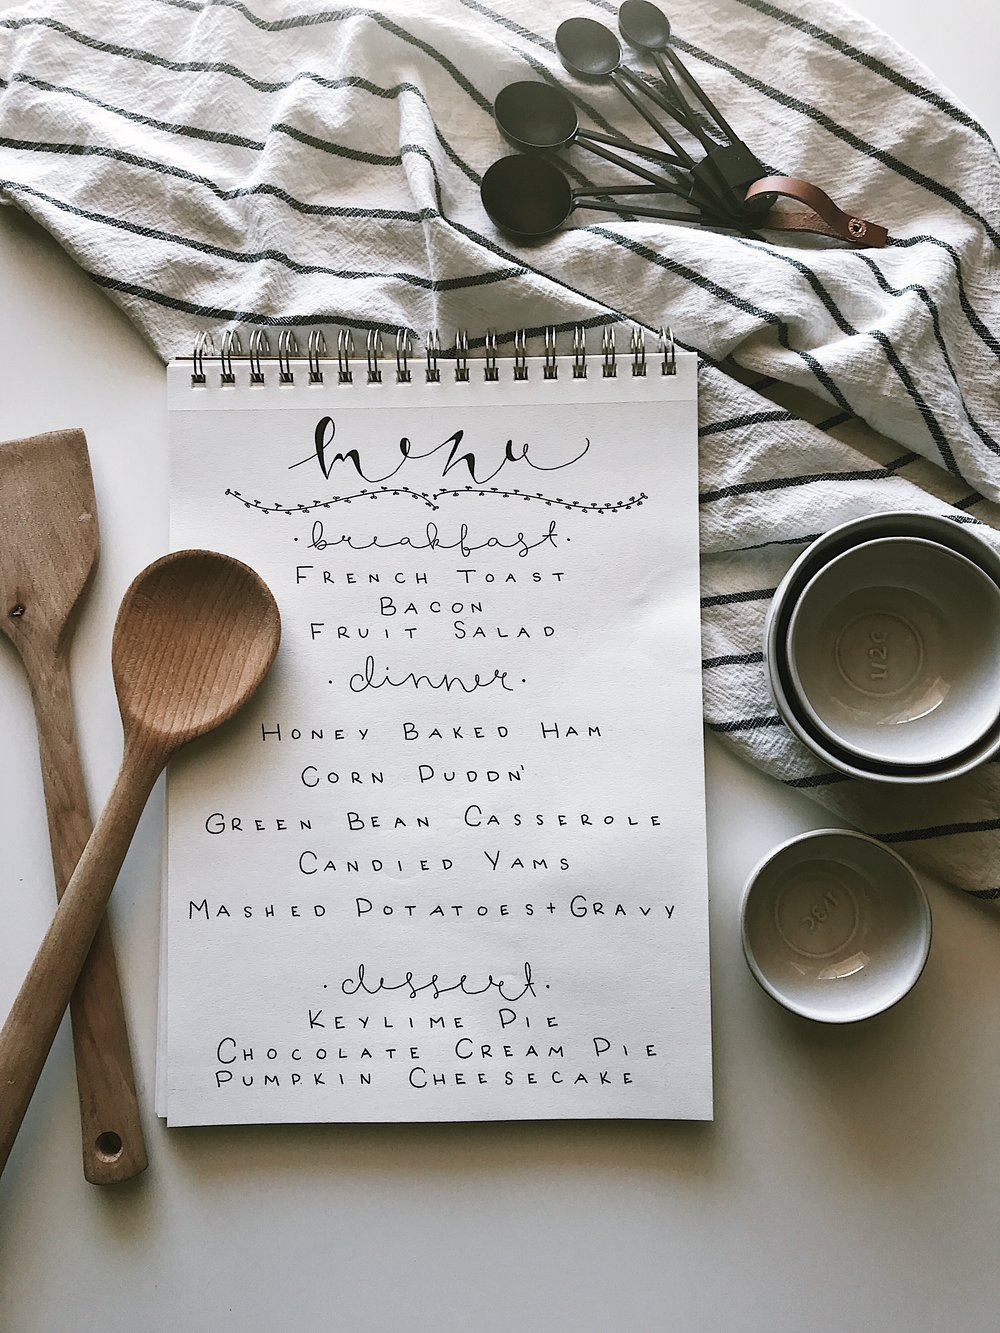 OUR THANKSGIVING MENU - This Wild Home